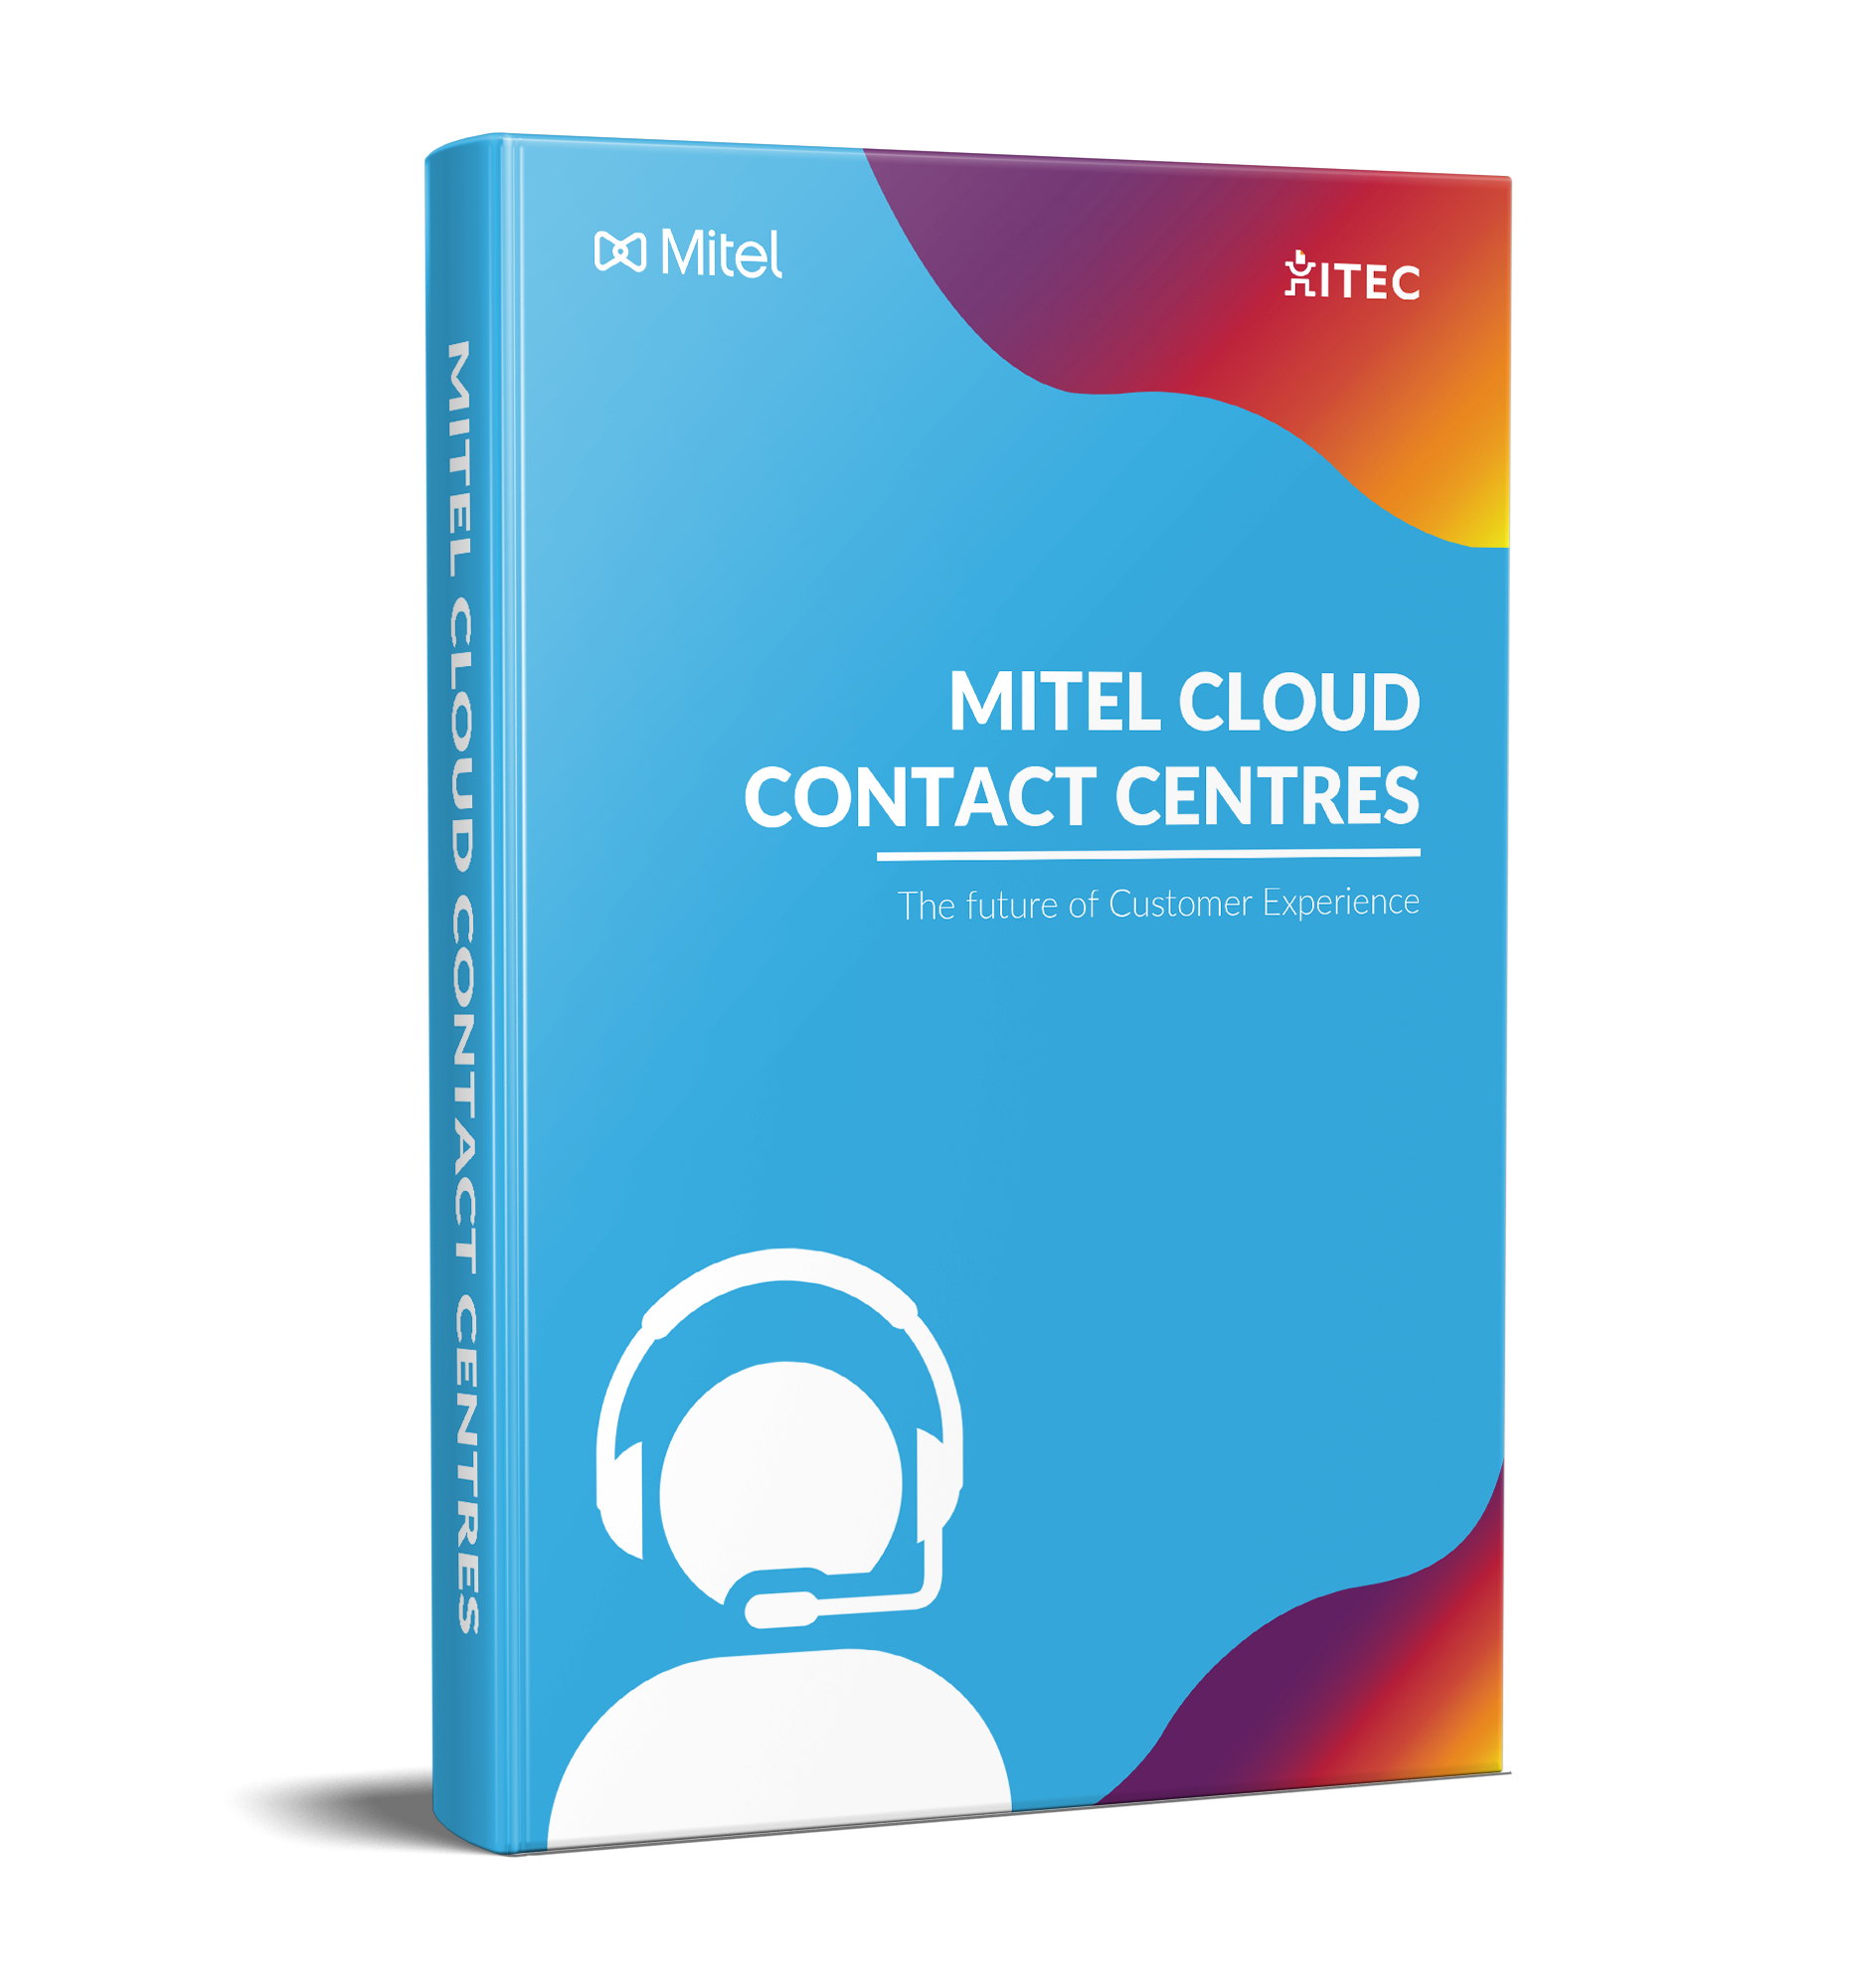 Mitel-Cloud-Contact-Centers-and-the-future-of-customer-experience